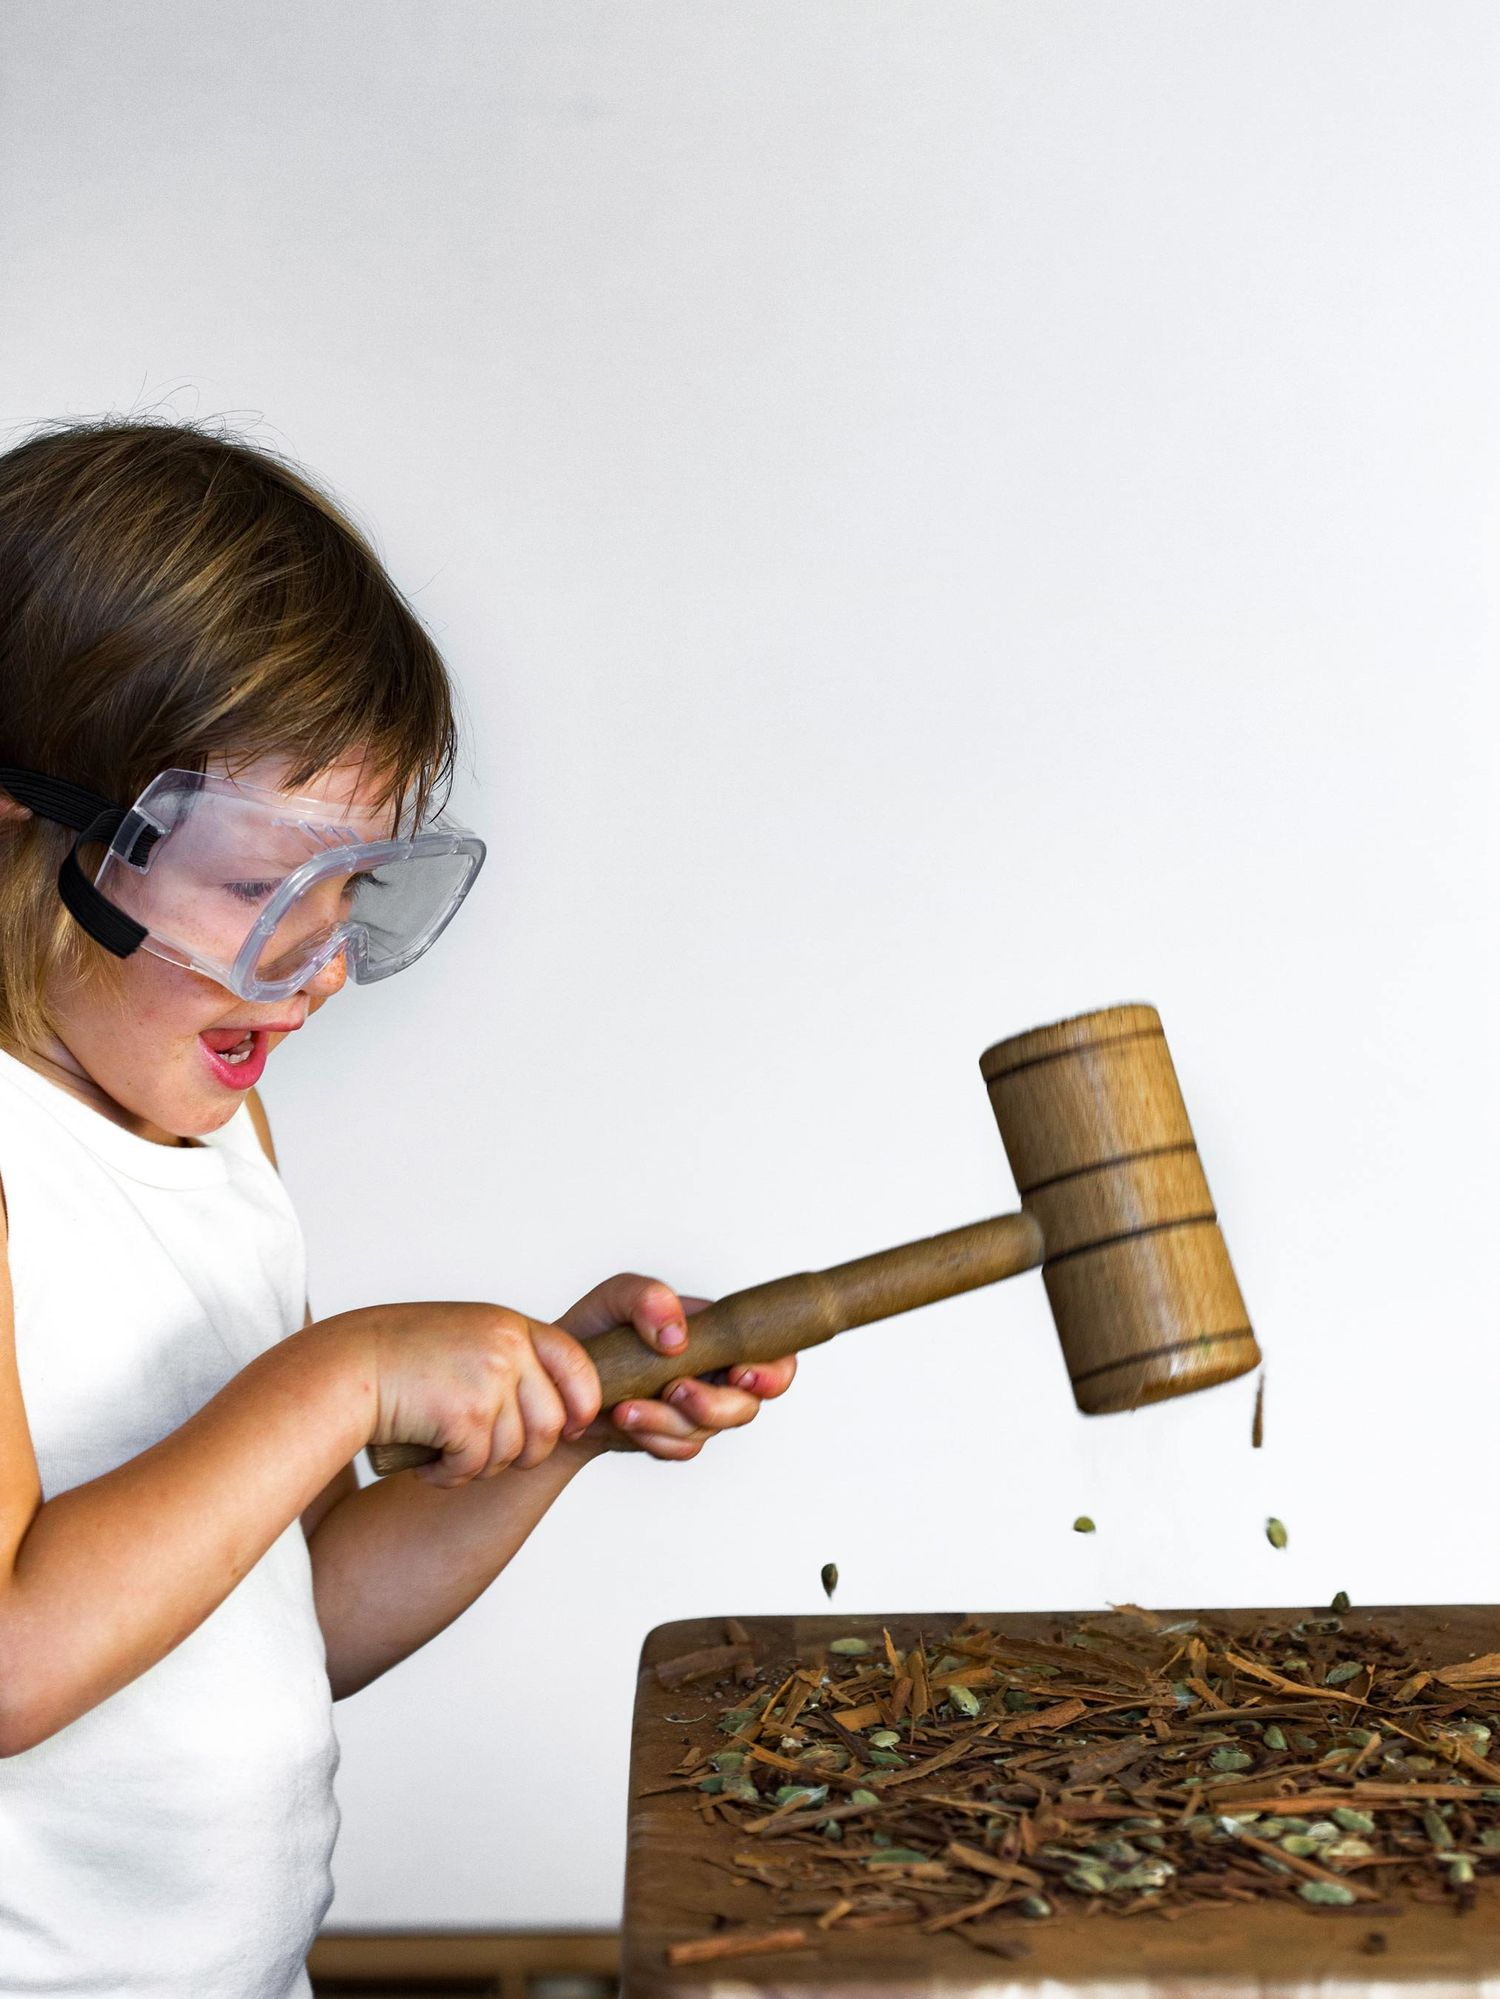 Child smashing herbs with a cooking mallet.